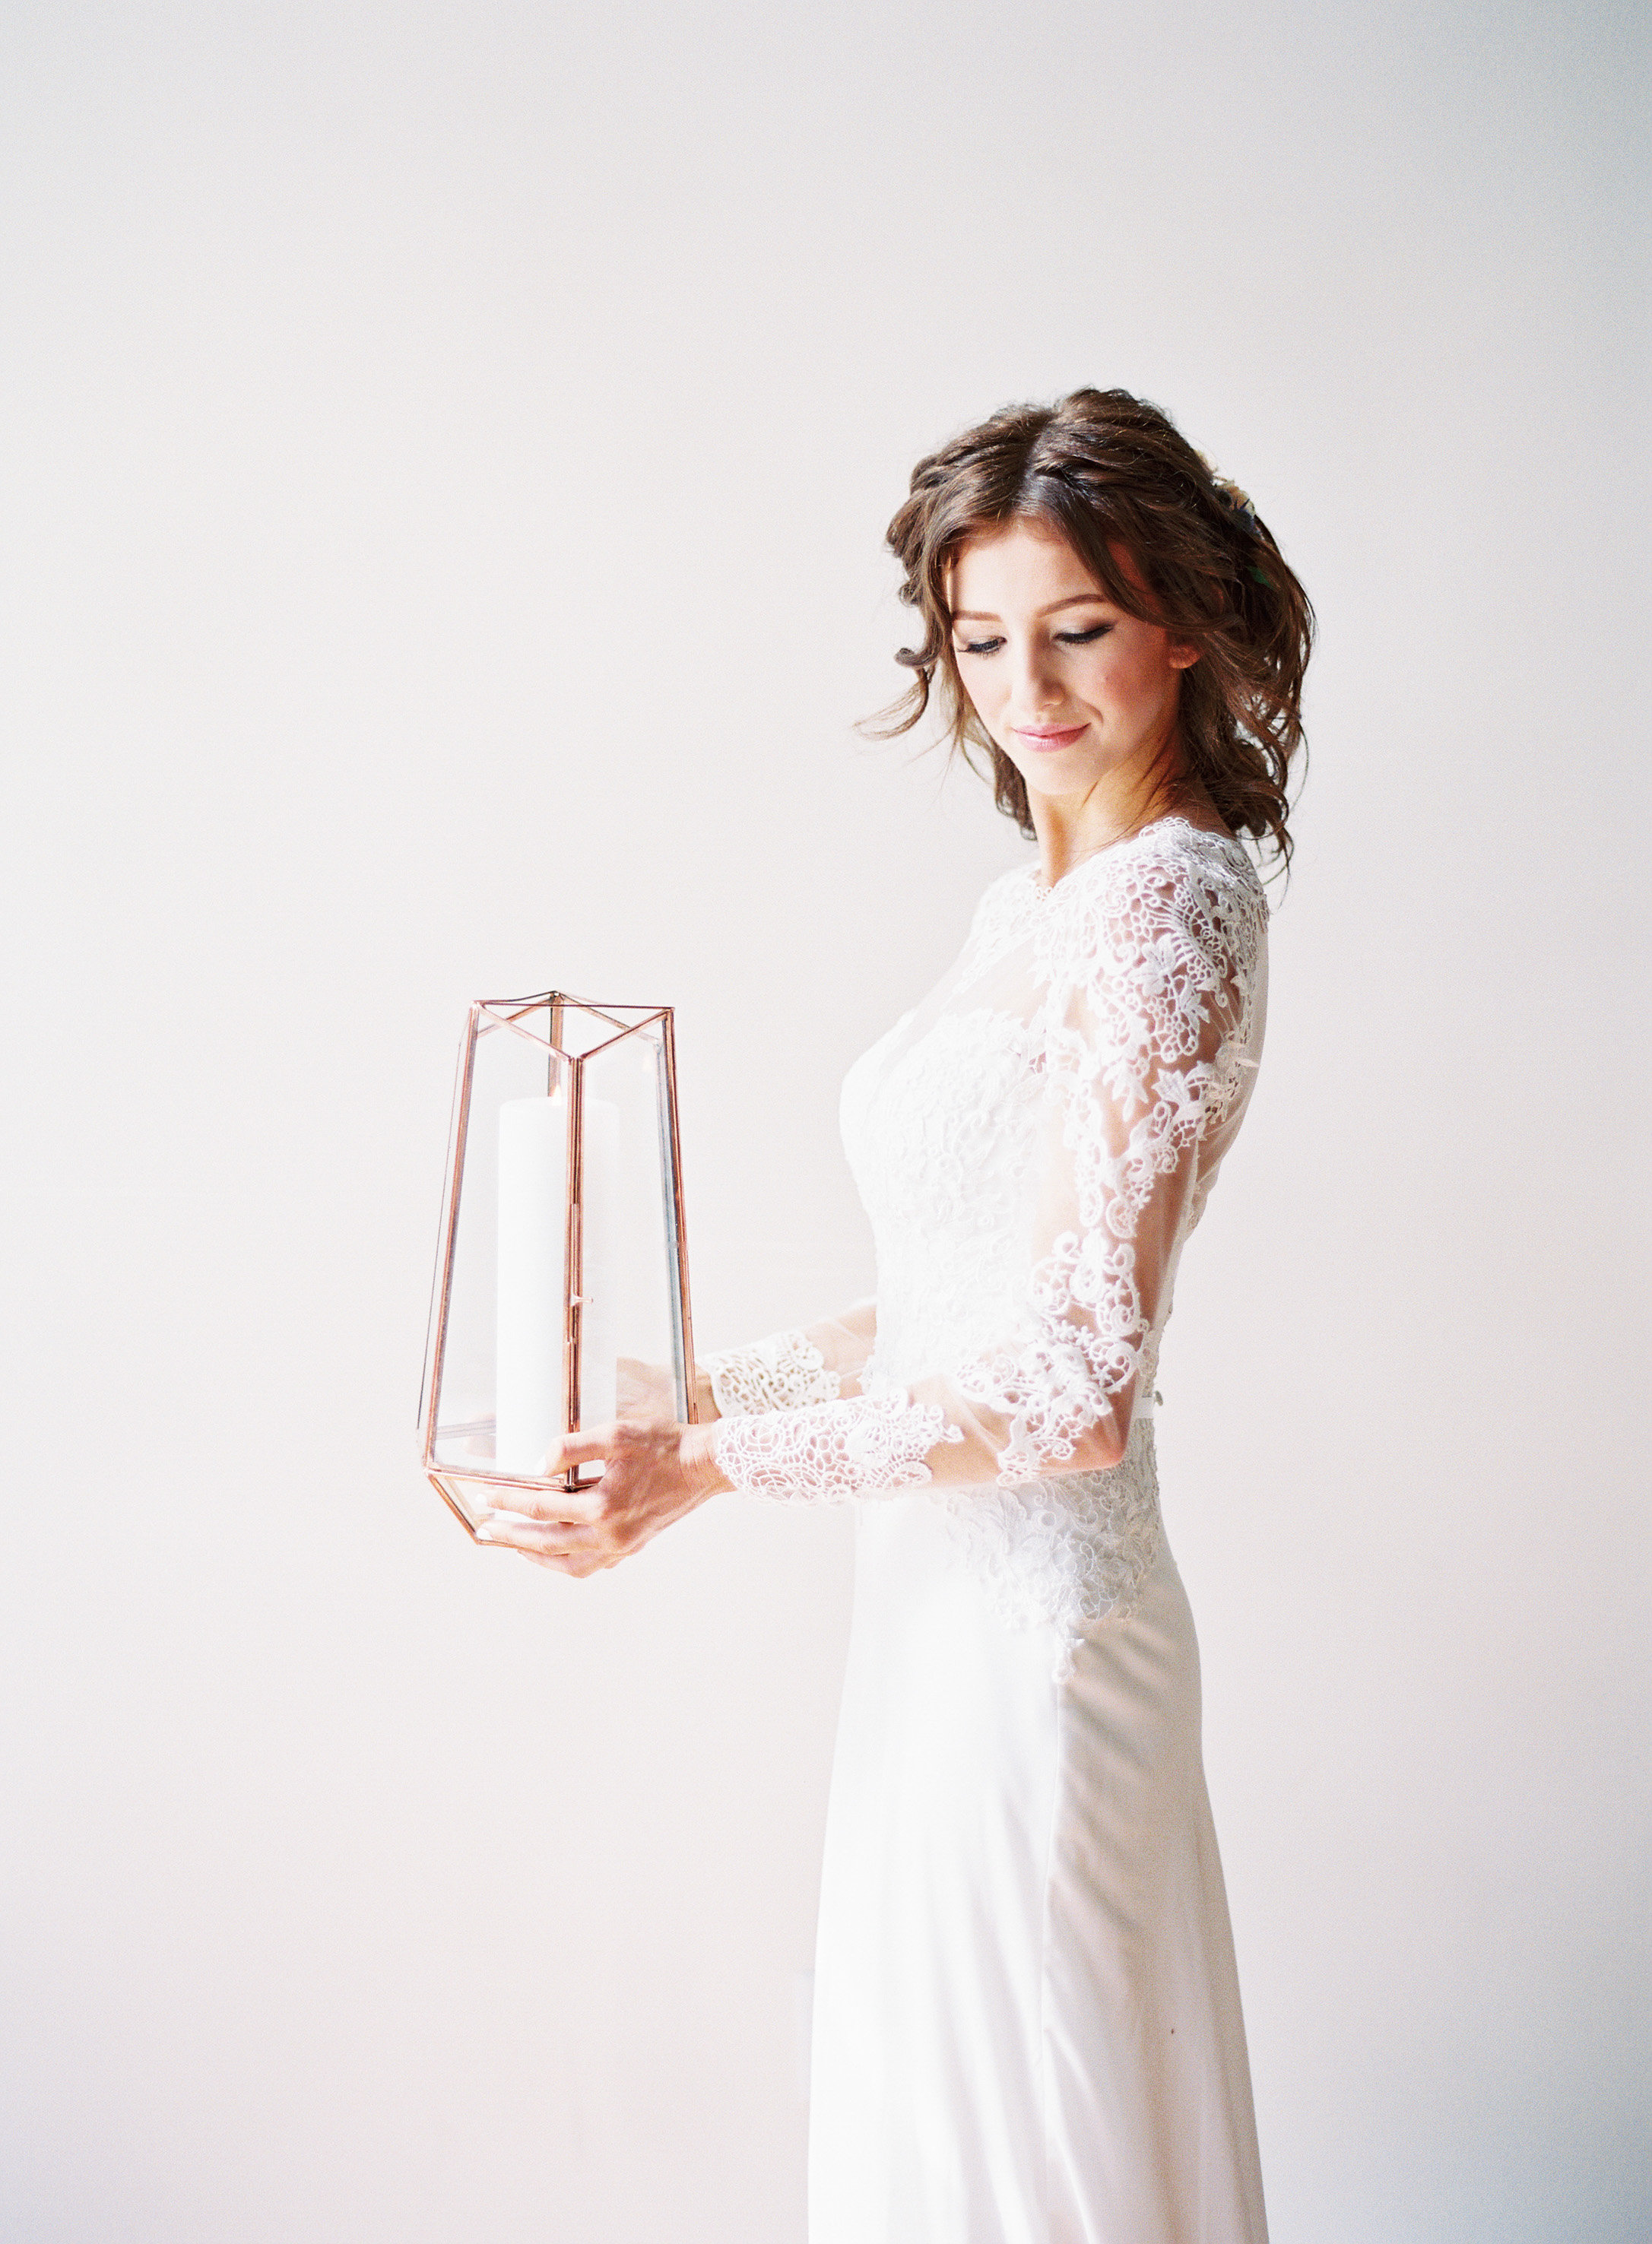 Rose Gold Wedding Details   The Loft on Pine Wedding   Green Apple Event Co   Sposto Photography